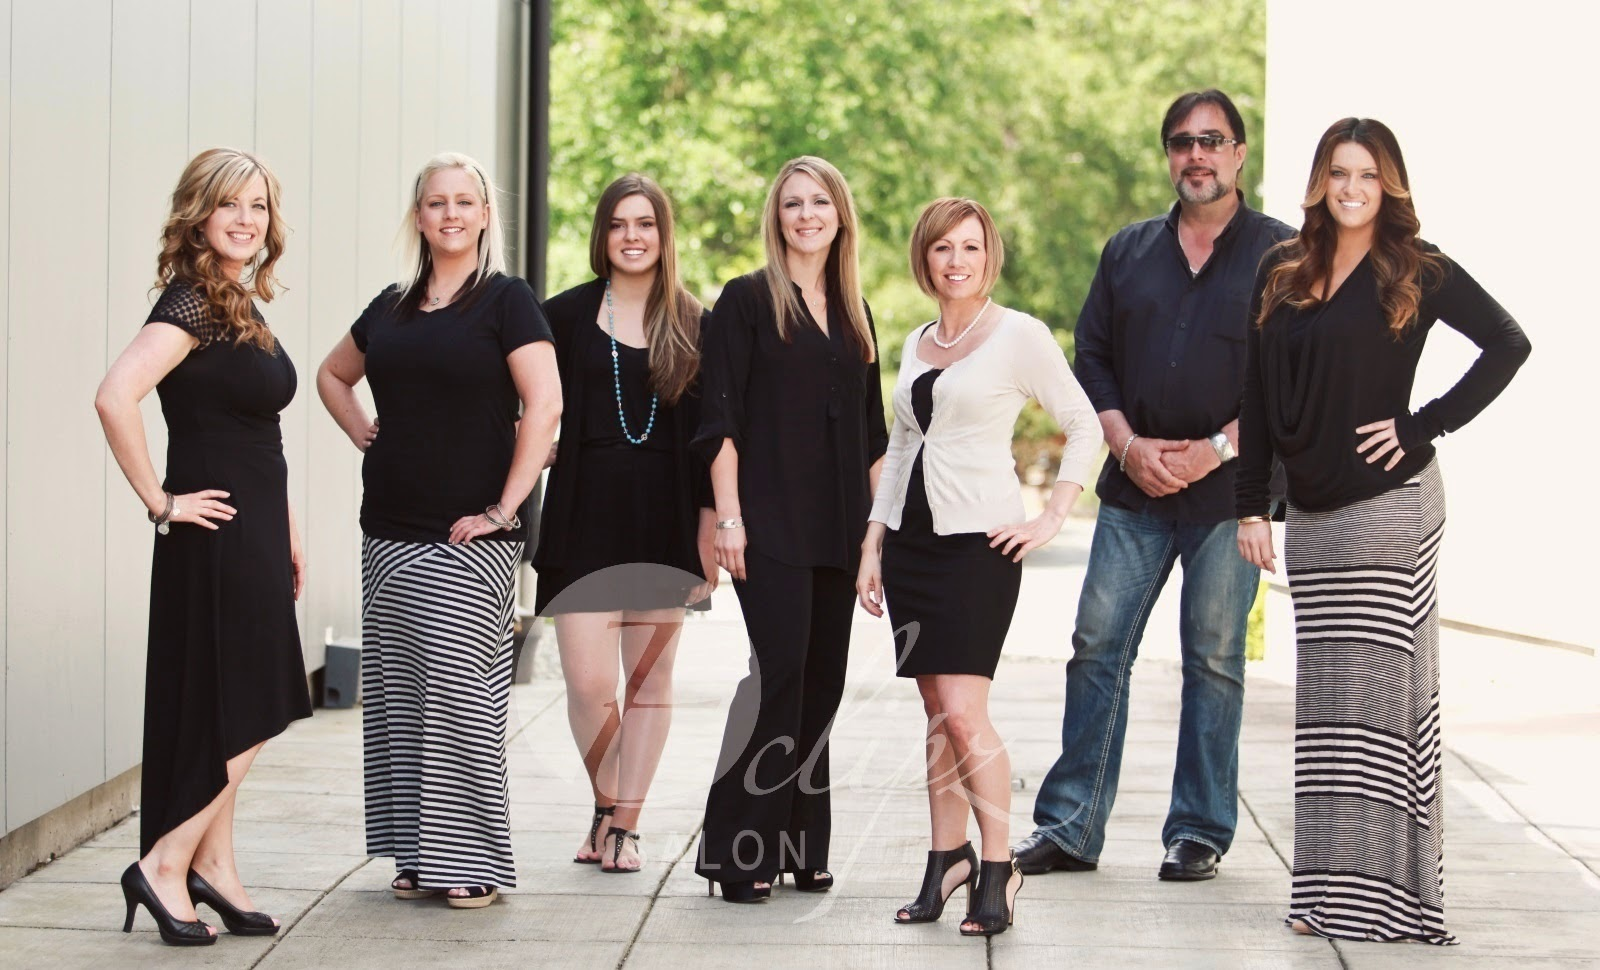 Eclipz Salon Team